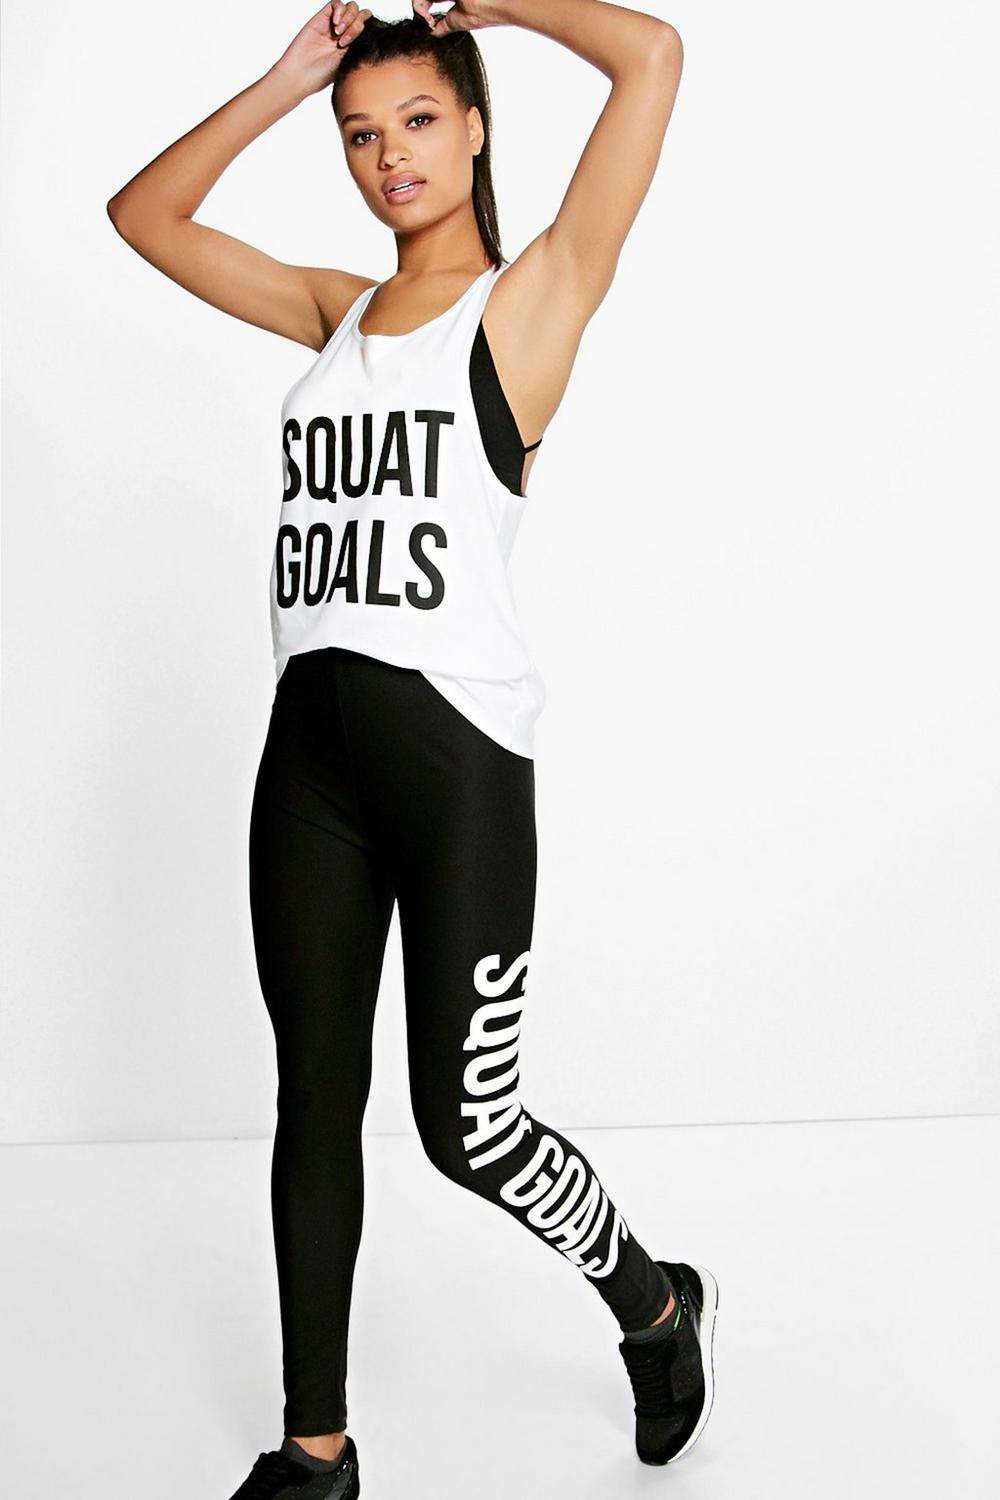 Emily Fit Squat Goals Sport Running Legging